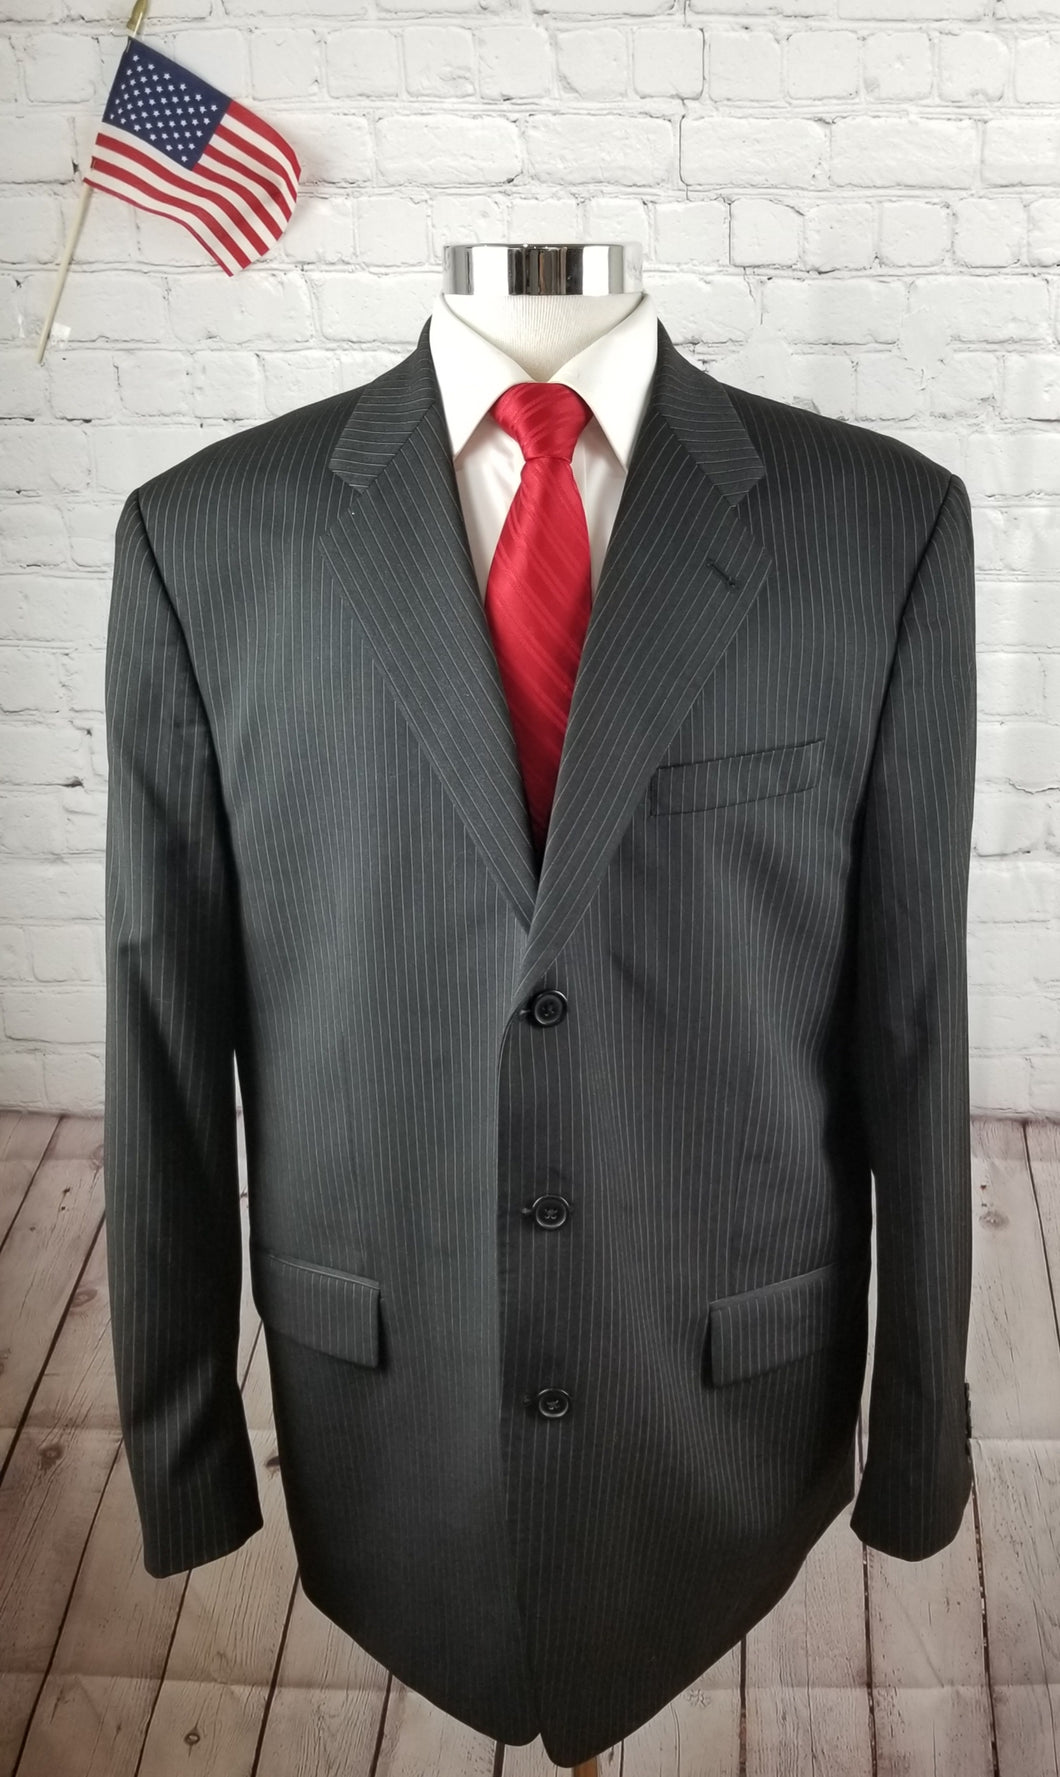 Micheal Kors Black Stripe Suit 48L Pants 40X34 $595 - SUIT CHARITY OUTLET